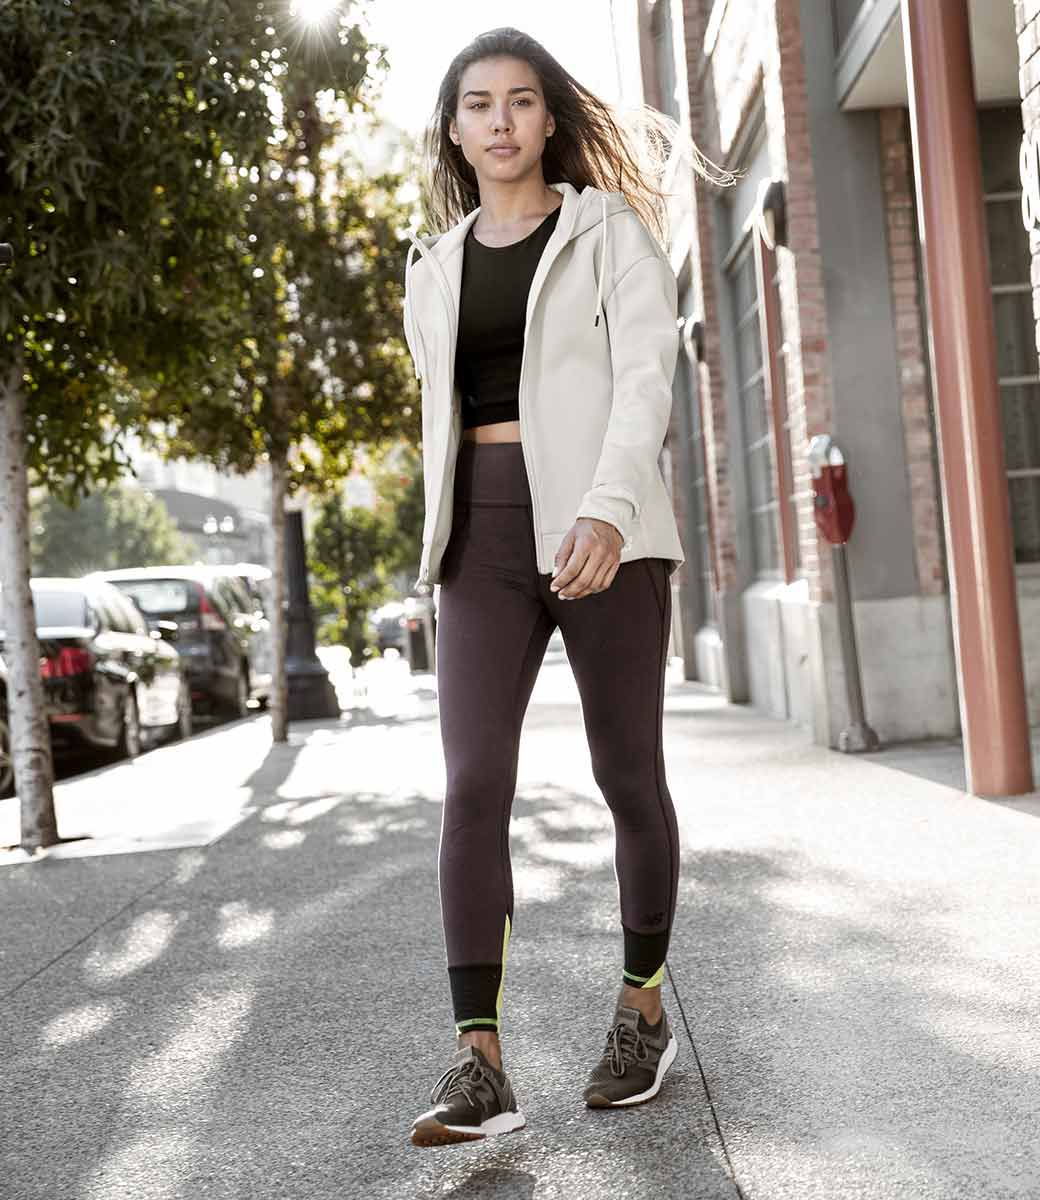 New Balance US Women's Lifestyle Weekend Look Email,